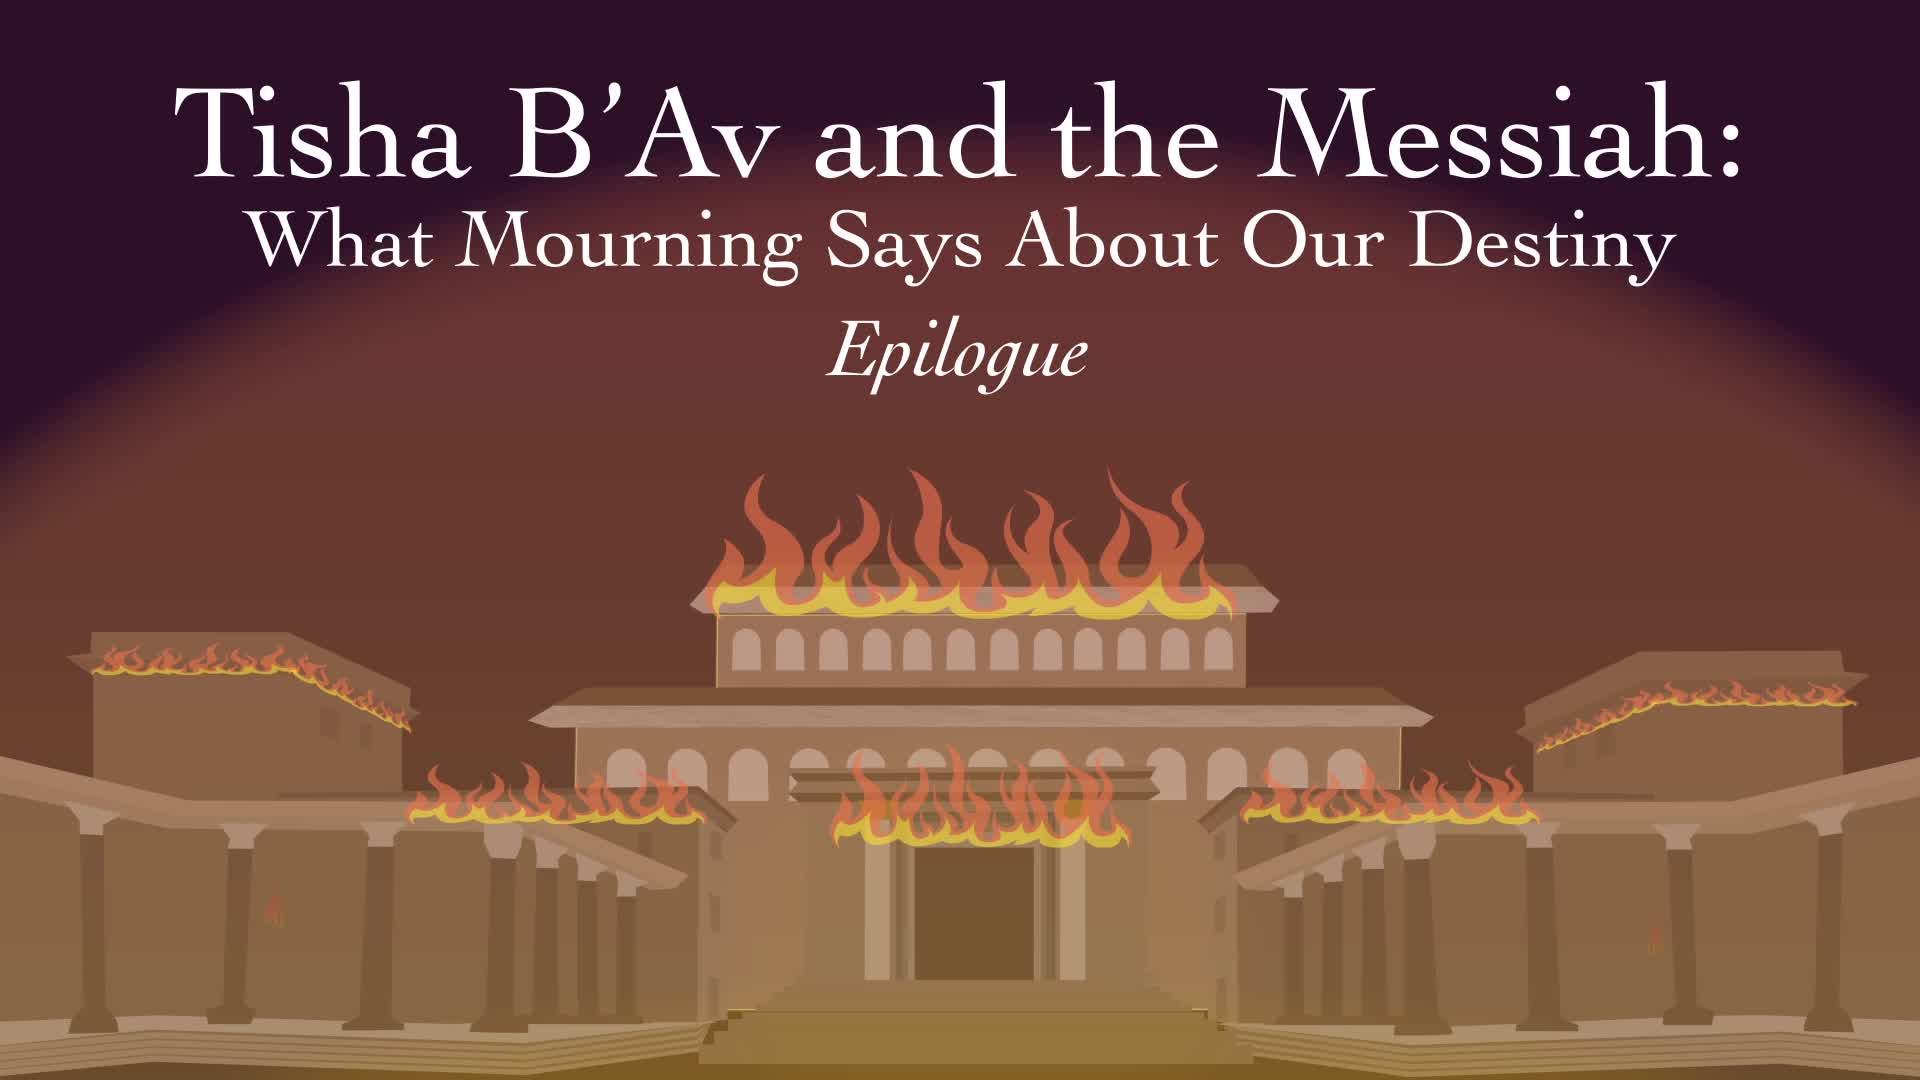 Tisha B'Av and the Messiah: Epilogue